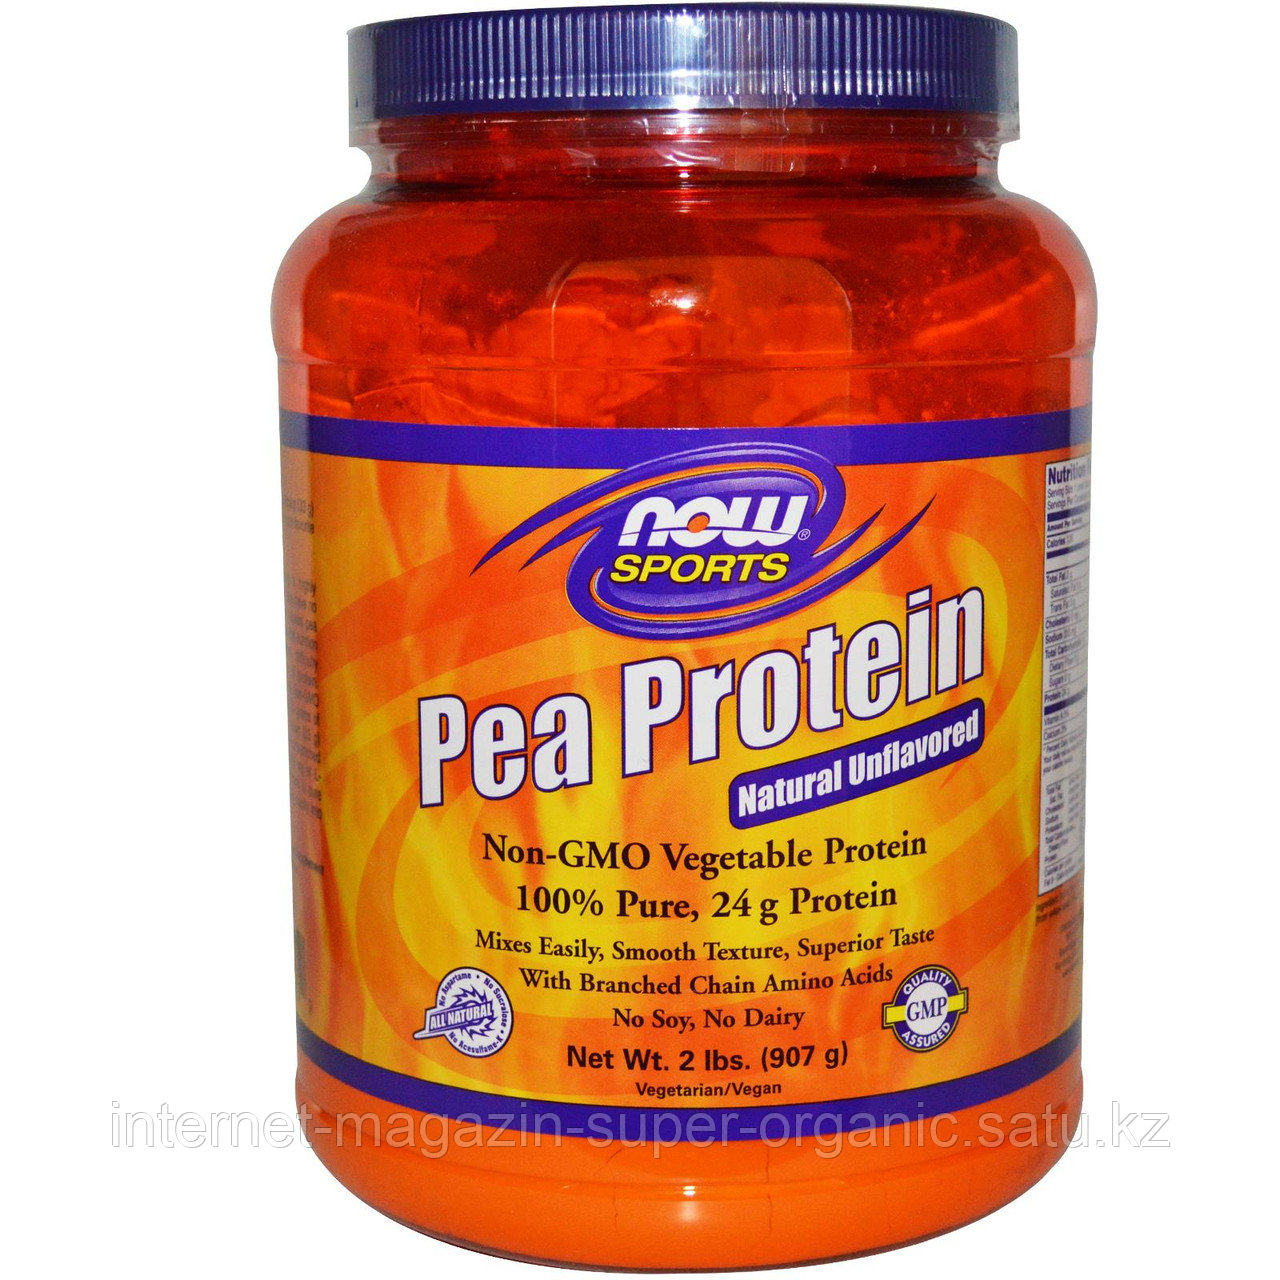 Протеин гороха, 907 г, (Pea protein), Now Foods